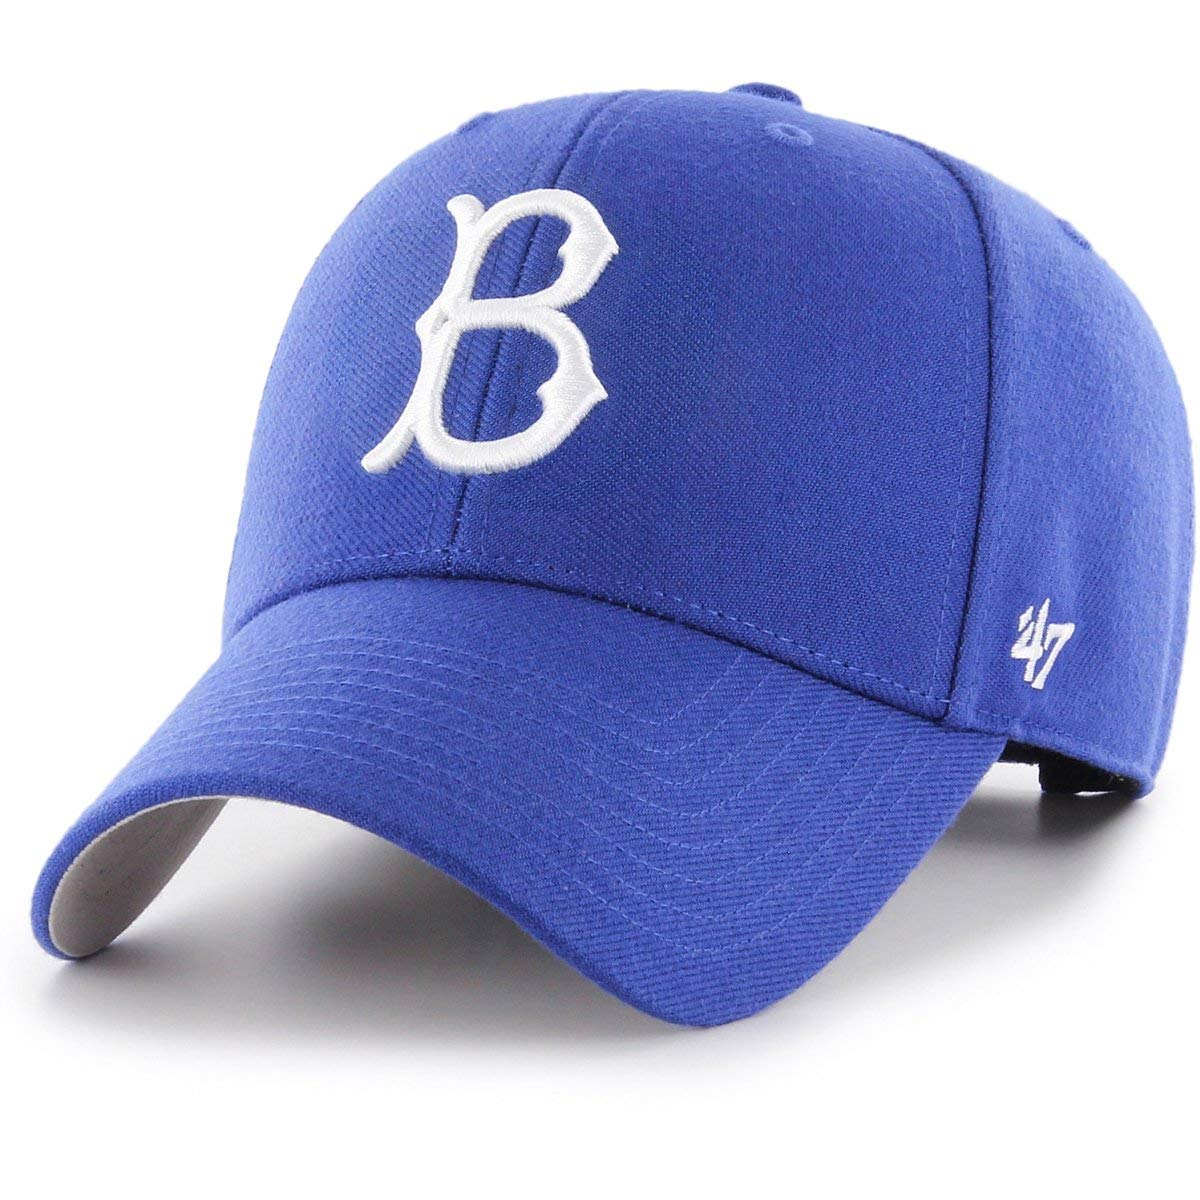 451062bbc10b5 Amazon.com    47 Authentic Brooklyn Dodgers Cooperstown Blue MLB Adjustable  - MVP   Sports   Outdoors